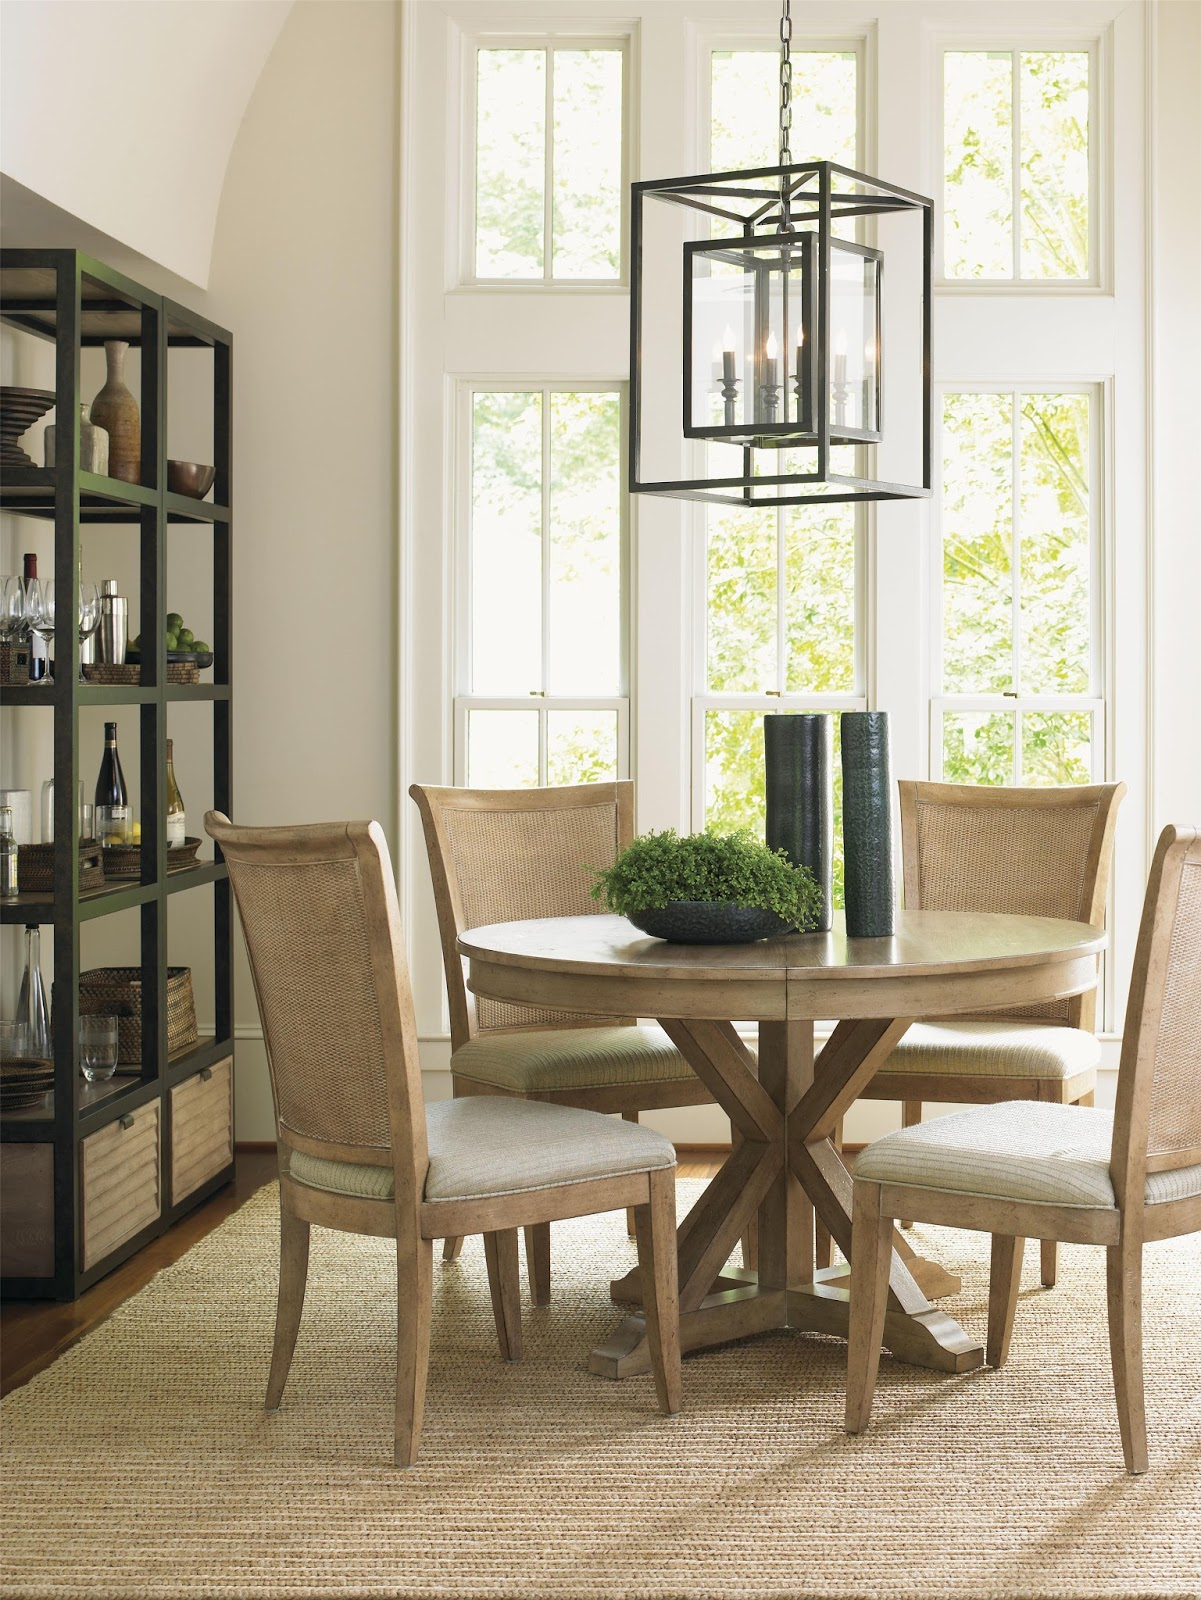 Baer's Furniture Store: Dining Room Sets For Casual